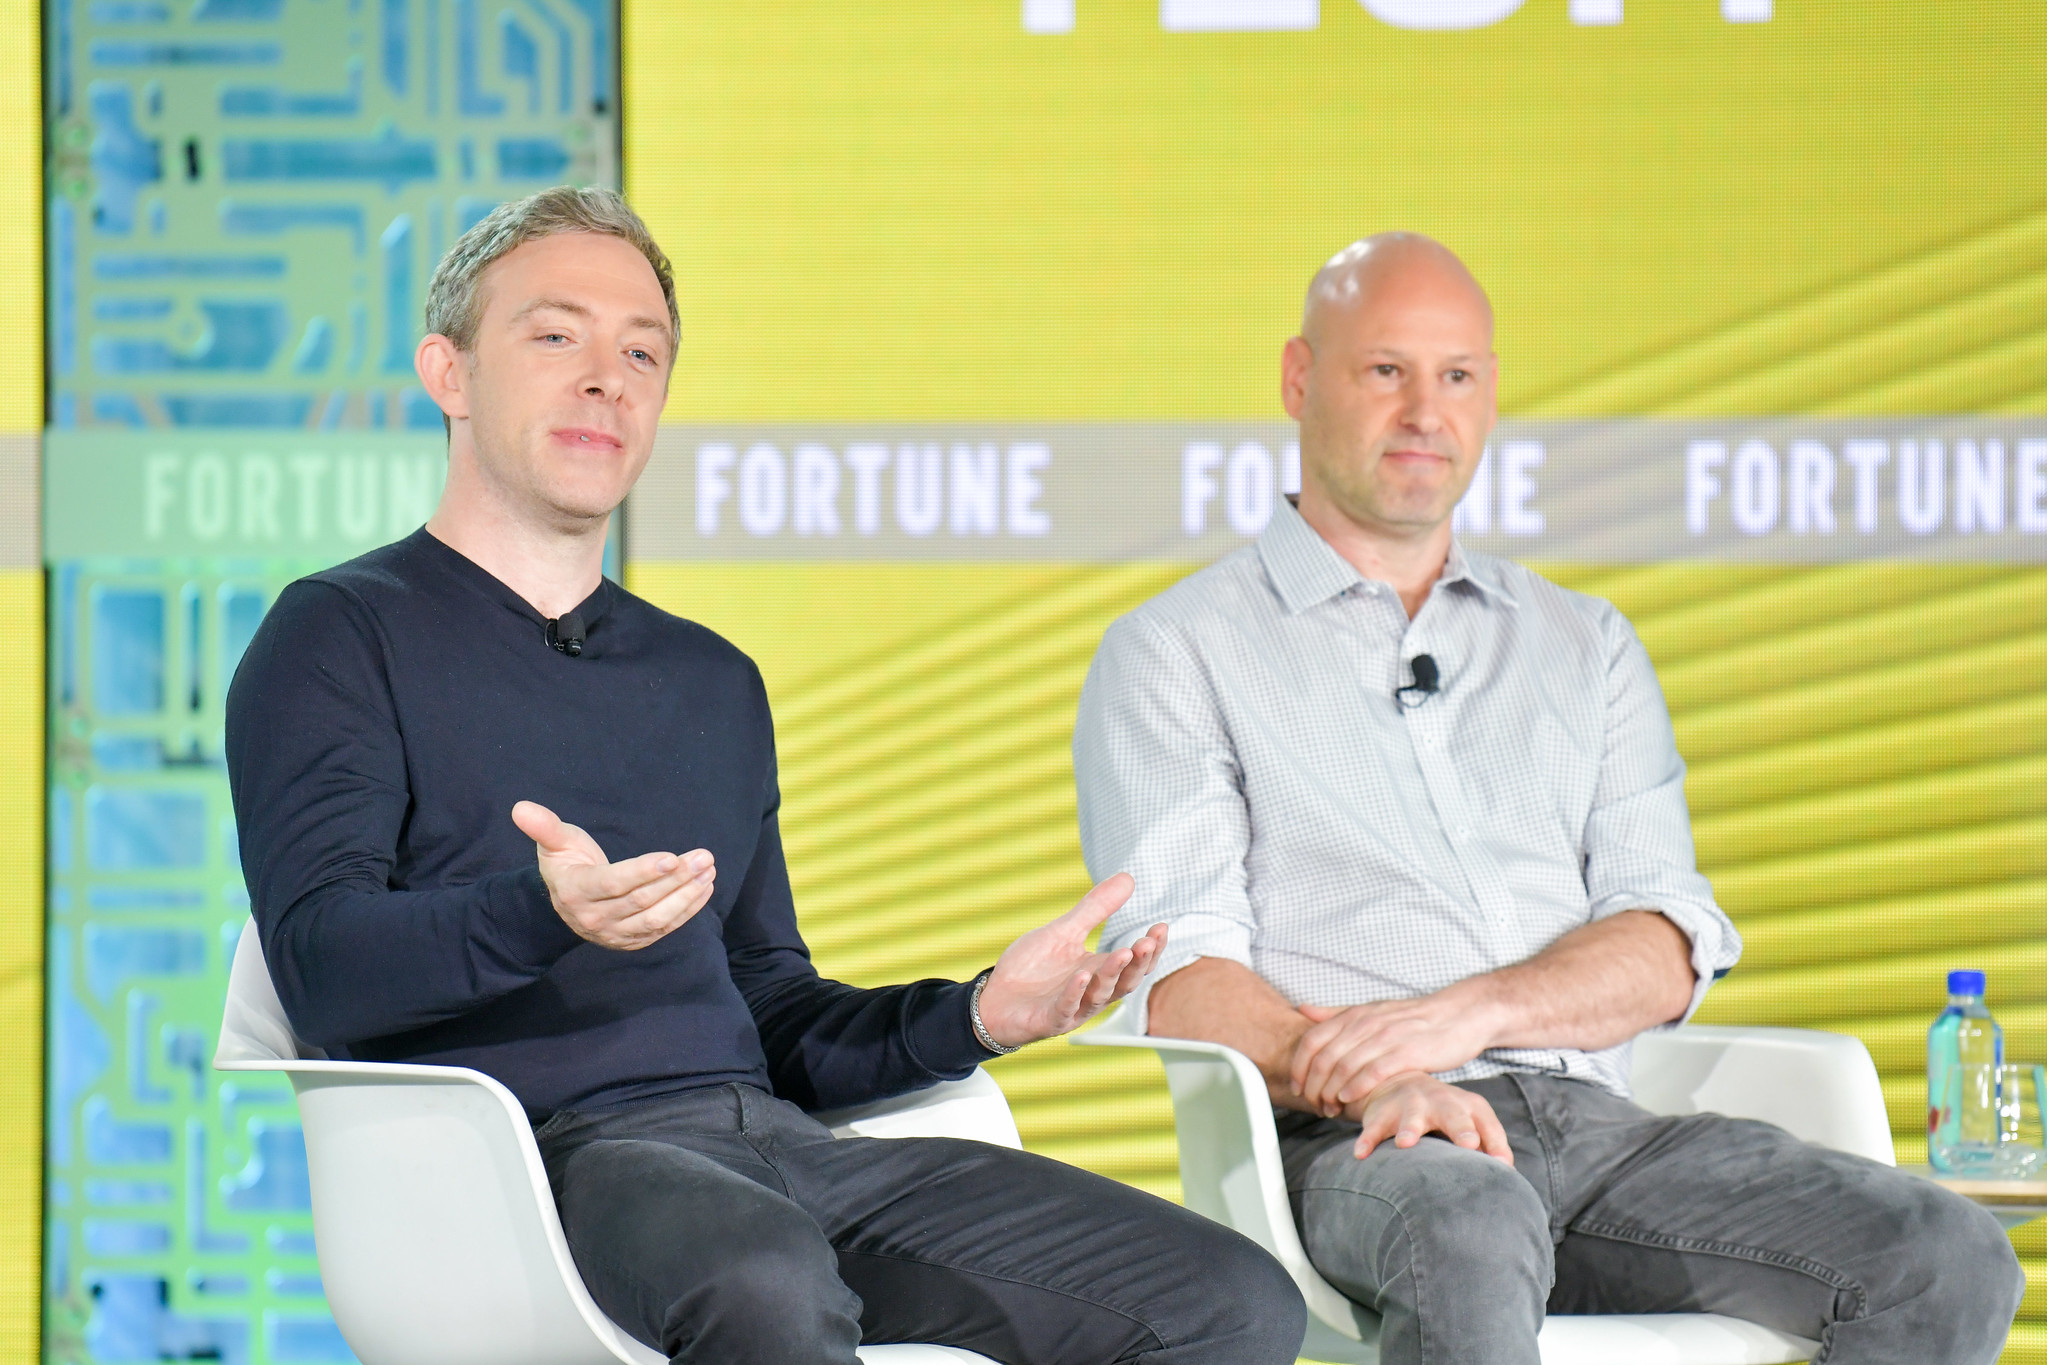 Dfinity CEO Dominic Williams (left) and Consensys CEO Joe Lubin (right) talk Web 3.0 at Fortune Brainstorm Tech 2019 on Wednesday, July 17, 2019.